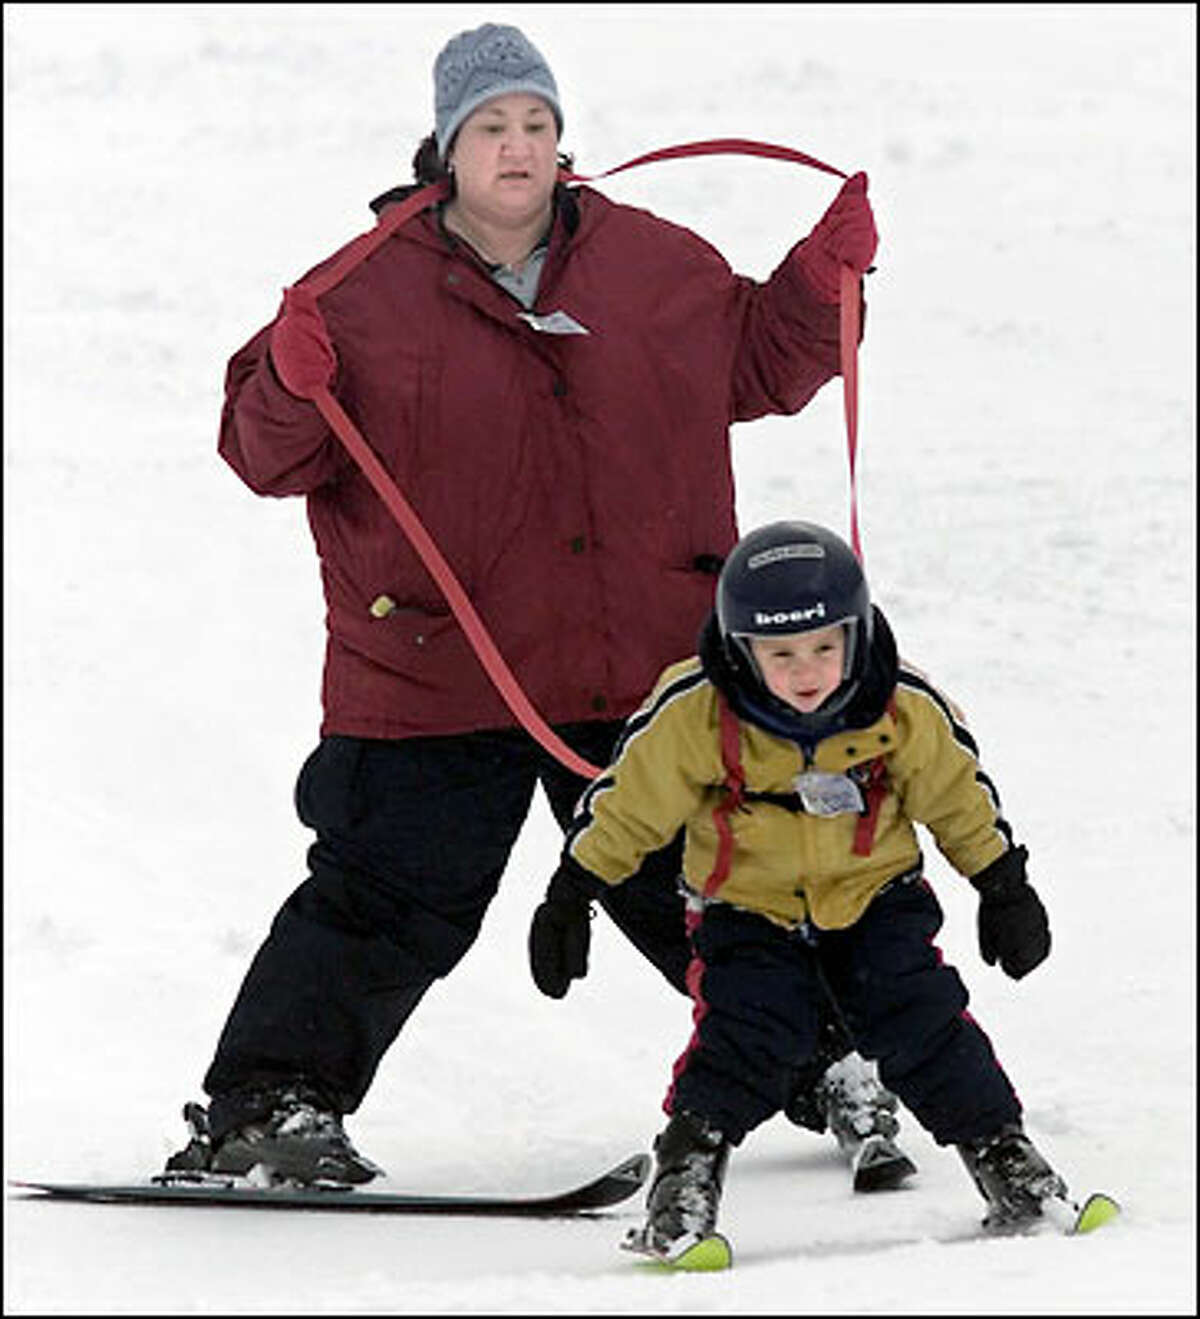 Tyler Thurman learns the ropes of skiing with his mother, Doreen. The 3-year-old would have preferred to snowboard yesterday at Snoqualmie Pass, but his mother advised skis first. Tyler's experience with ice hockey helped him look like a pro.